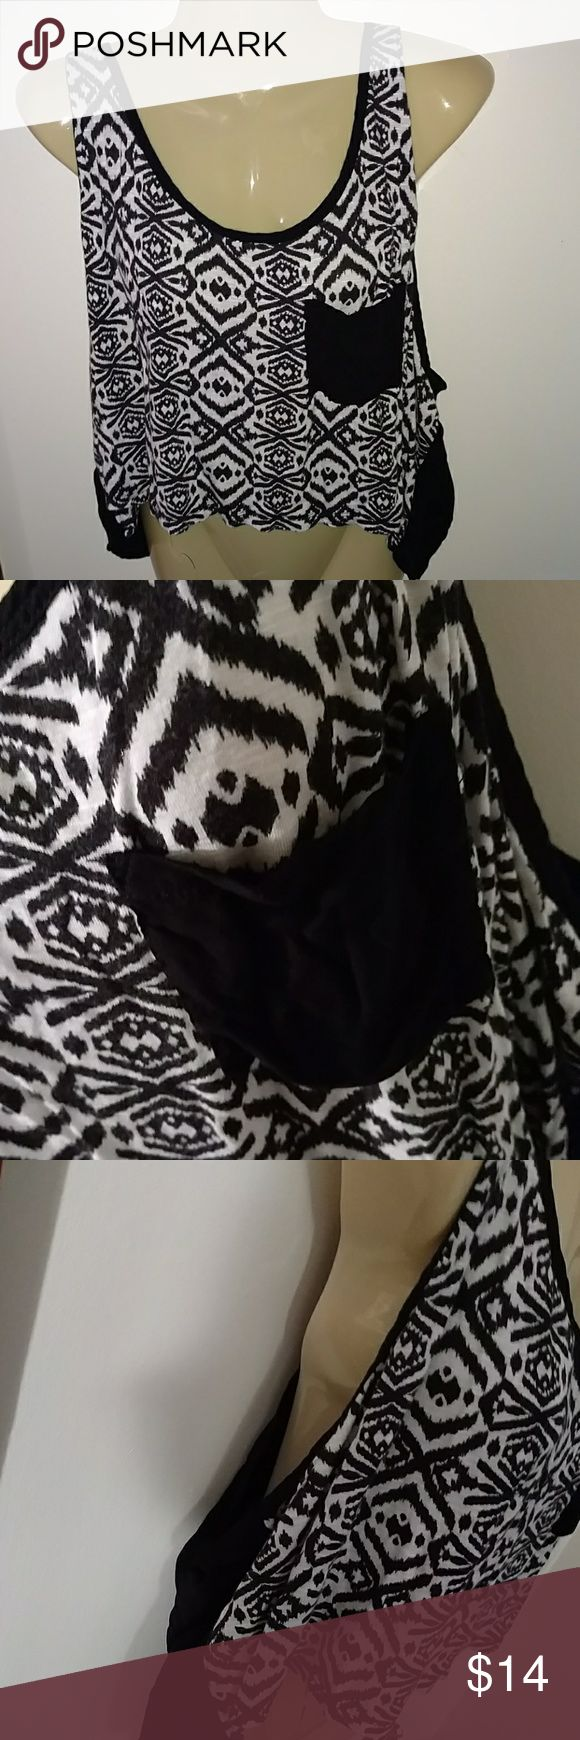 AZTEC STYLE ASYMMETRICAL LOOSE FIT TOP Design as Shown Excellent Condition Has 1 front Pocket Loose fitting ~~ great alone or over a Cami / tank / Bralett or Swim Top Xhilaration Tops